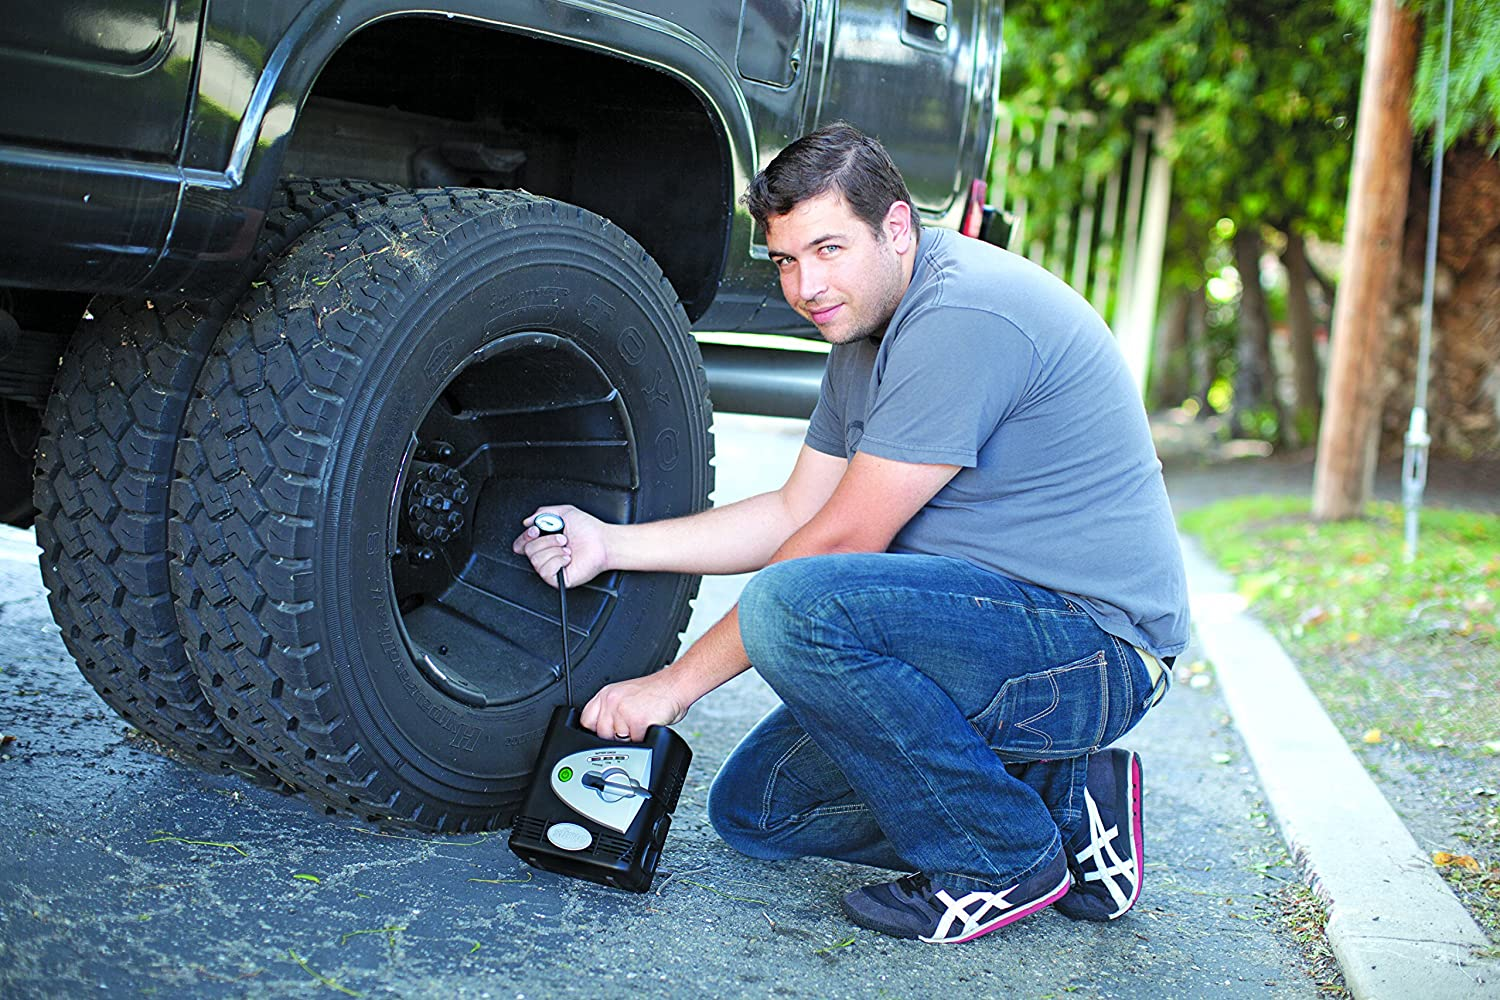 9. The Slime 40033 Rechargeable Air Compressor and 12 volt tire inflator